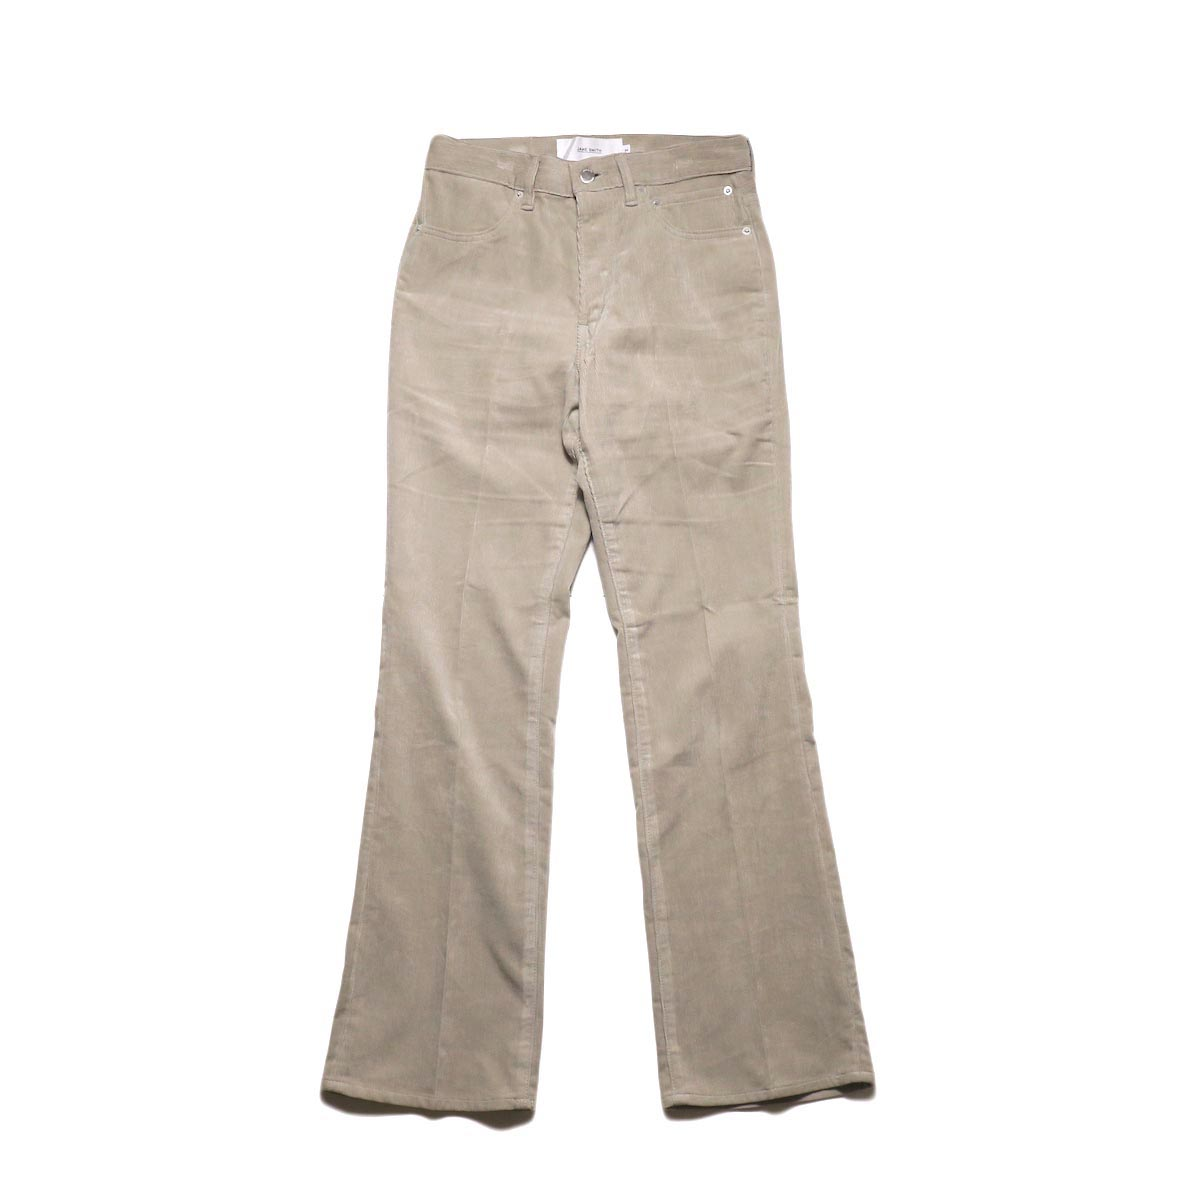 JANE SMITH / 5POCKET BOOTSCUT (fawn beige) 正面